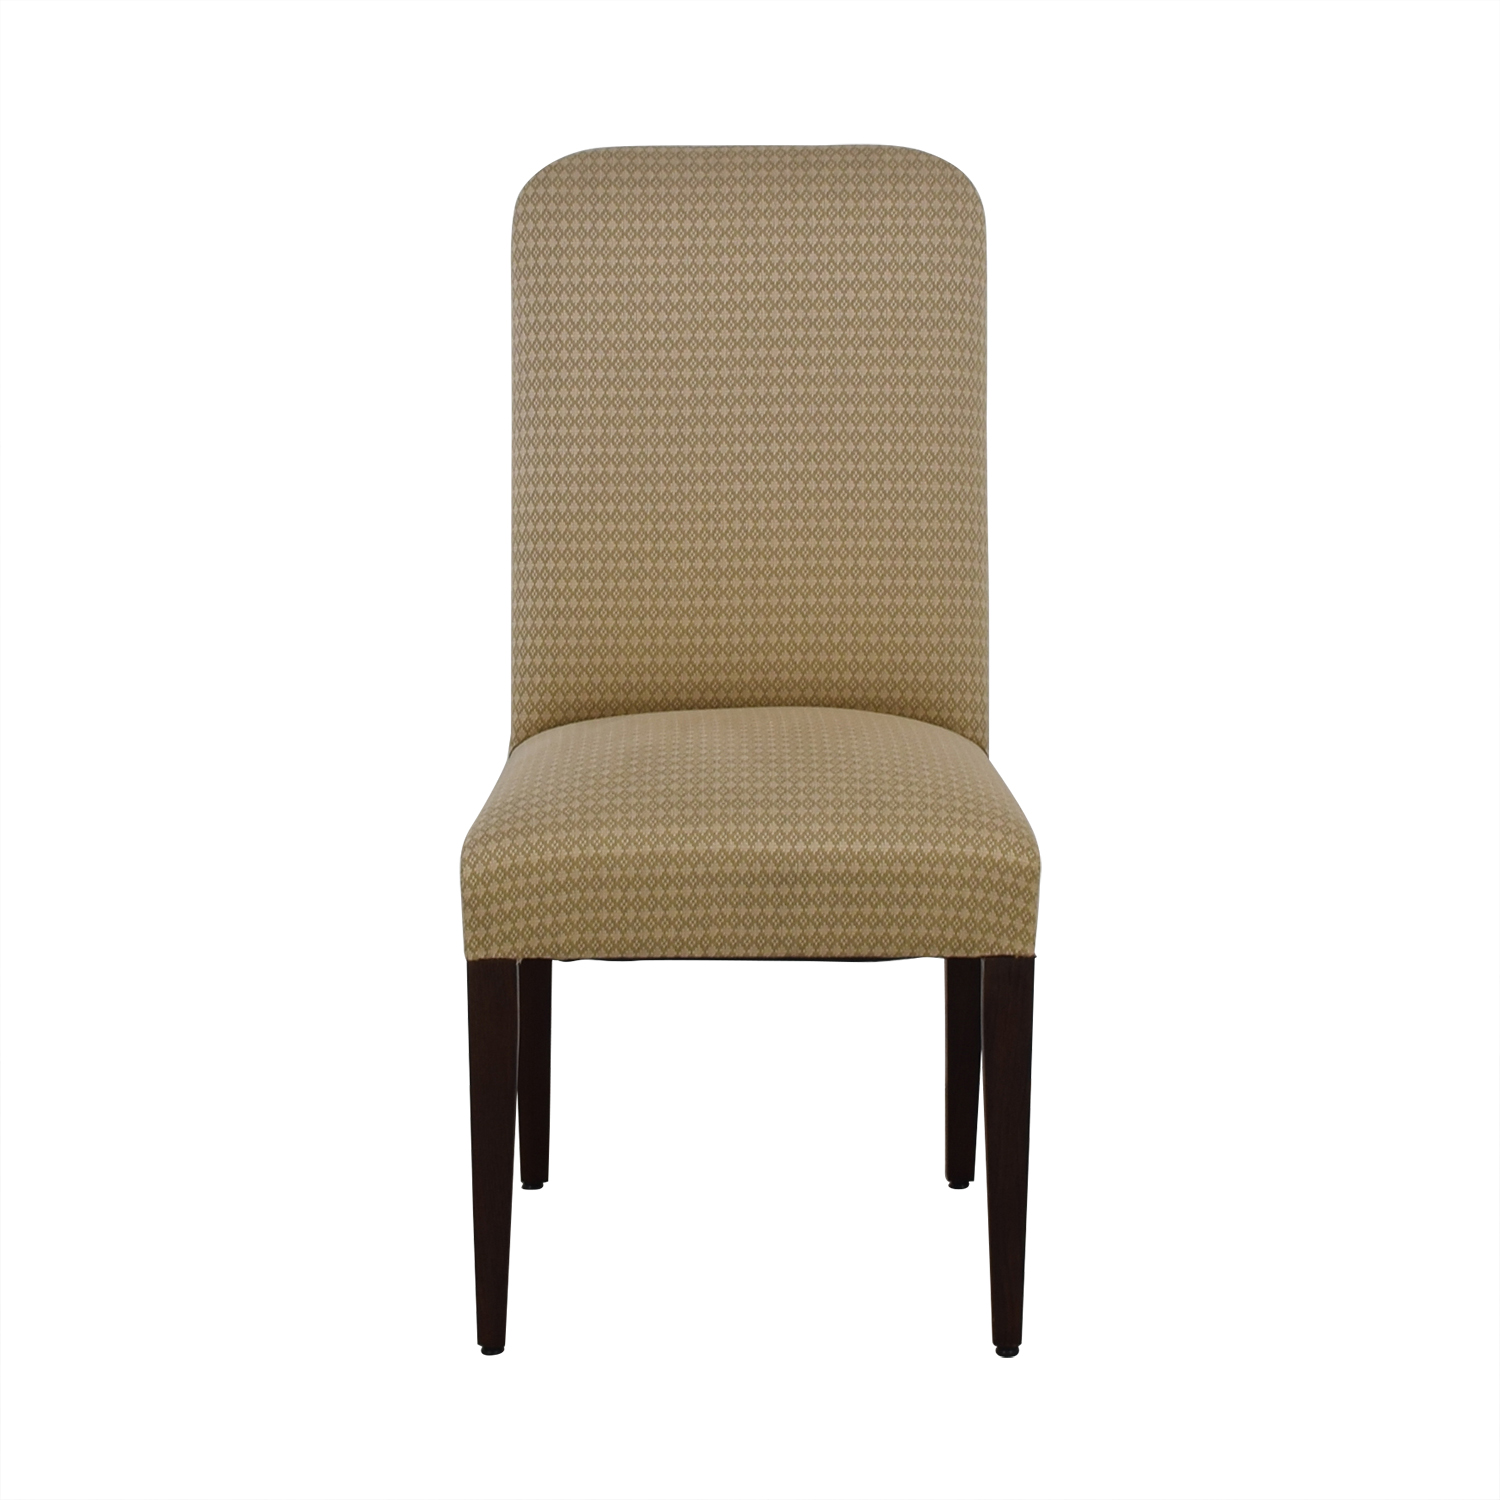 shop Furniture Masters Tan Accent Chair Furniture Masters Accent Chairs